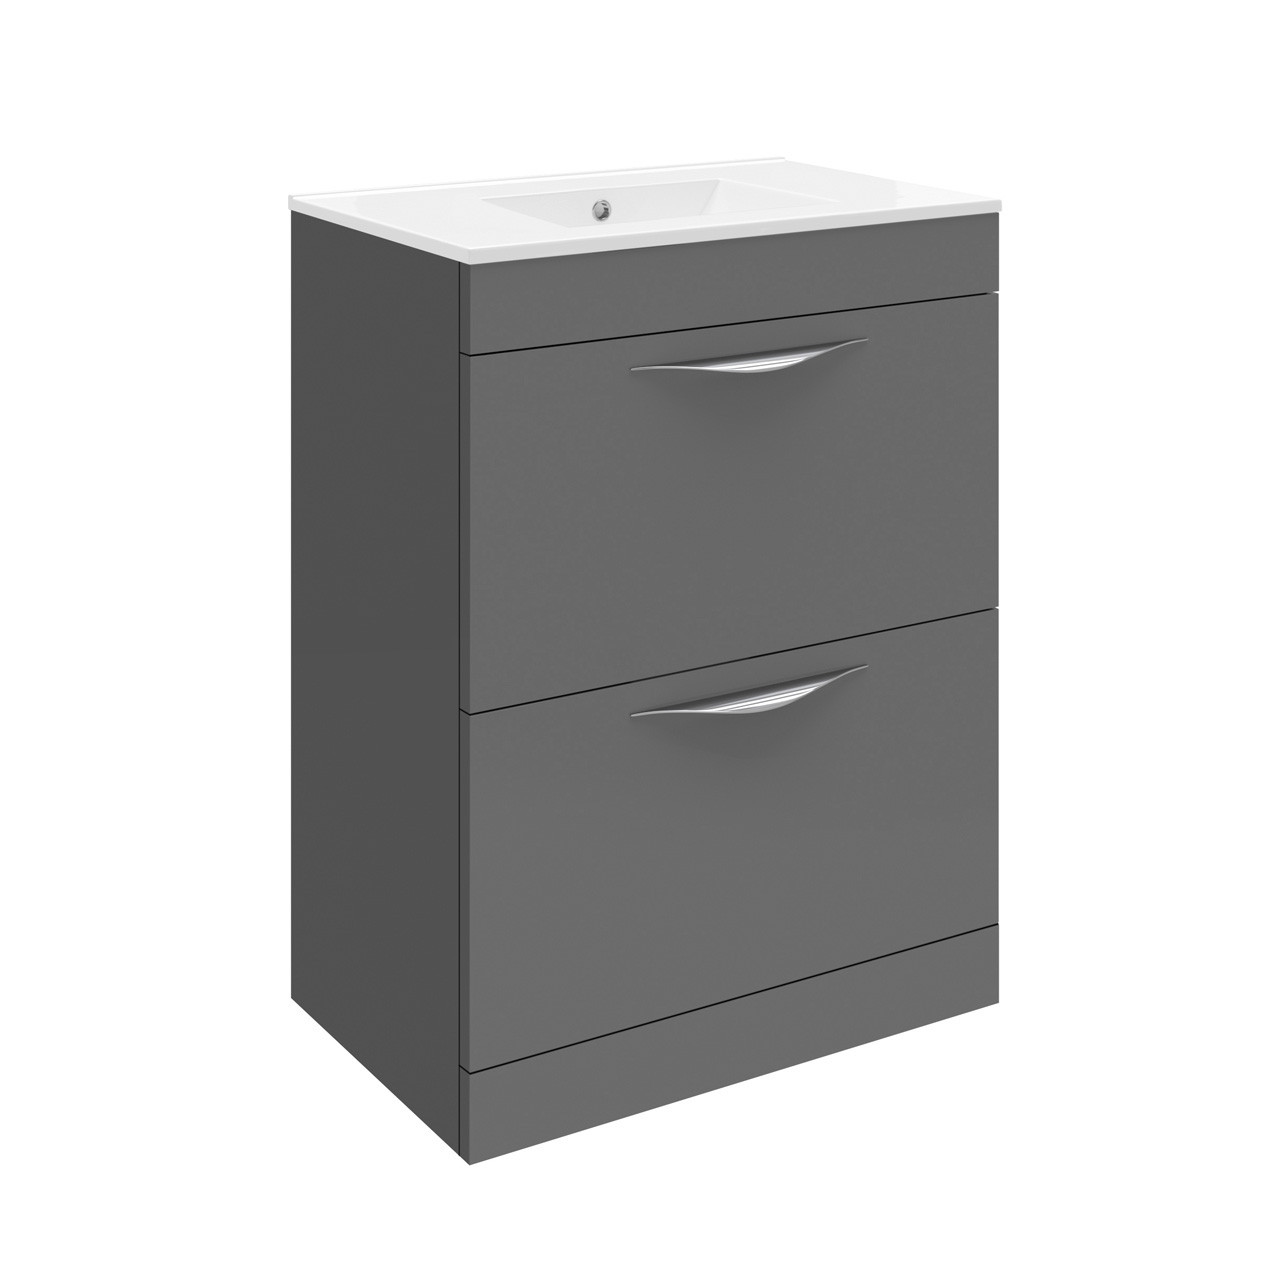 Hudson Reed Memoir Gloss Grey Floor Standing 600mm Cabinet & 40mm profile Basin - FME406 & NVM013